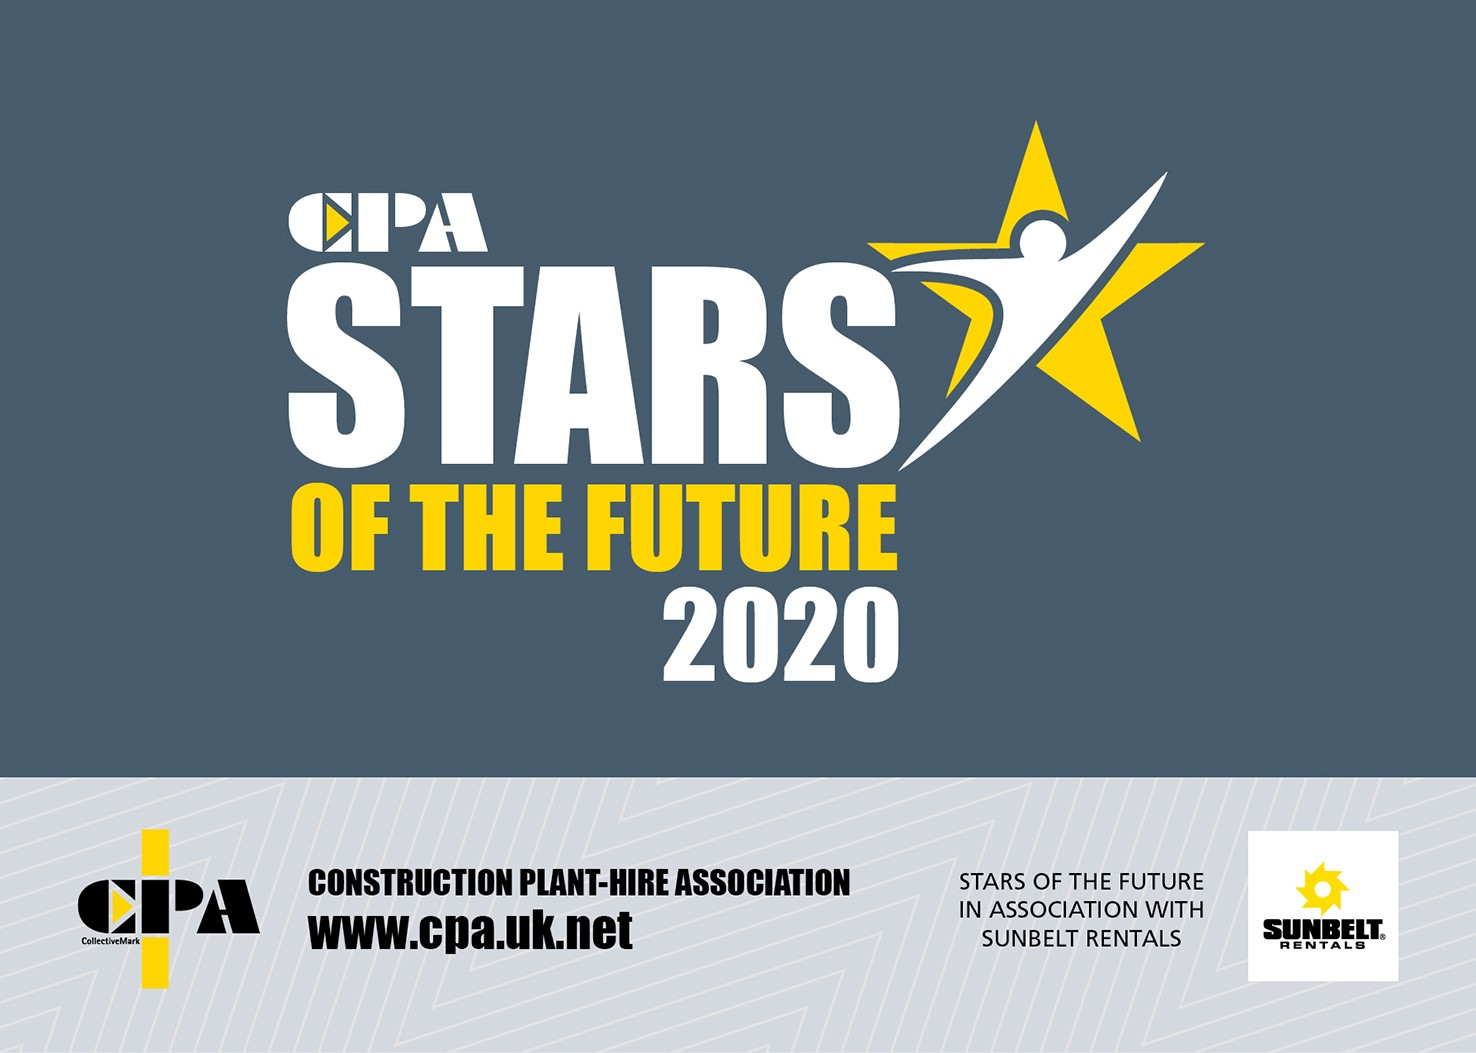 CPA announces the construction plant industry's Stars of the Future for 2020